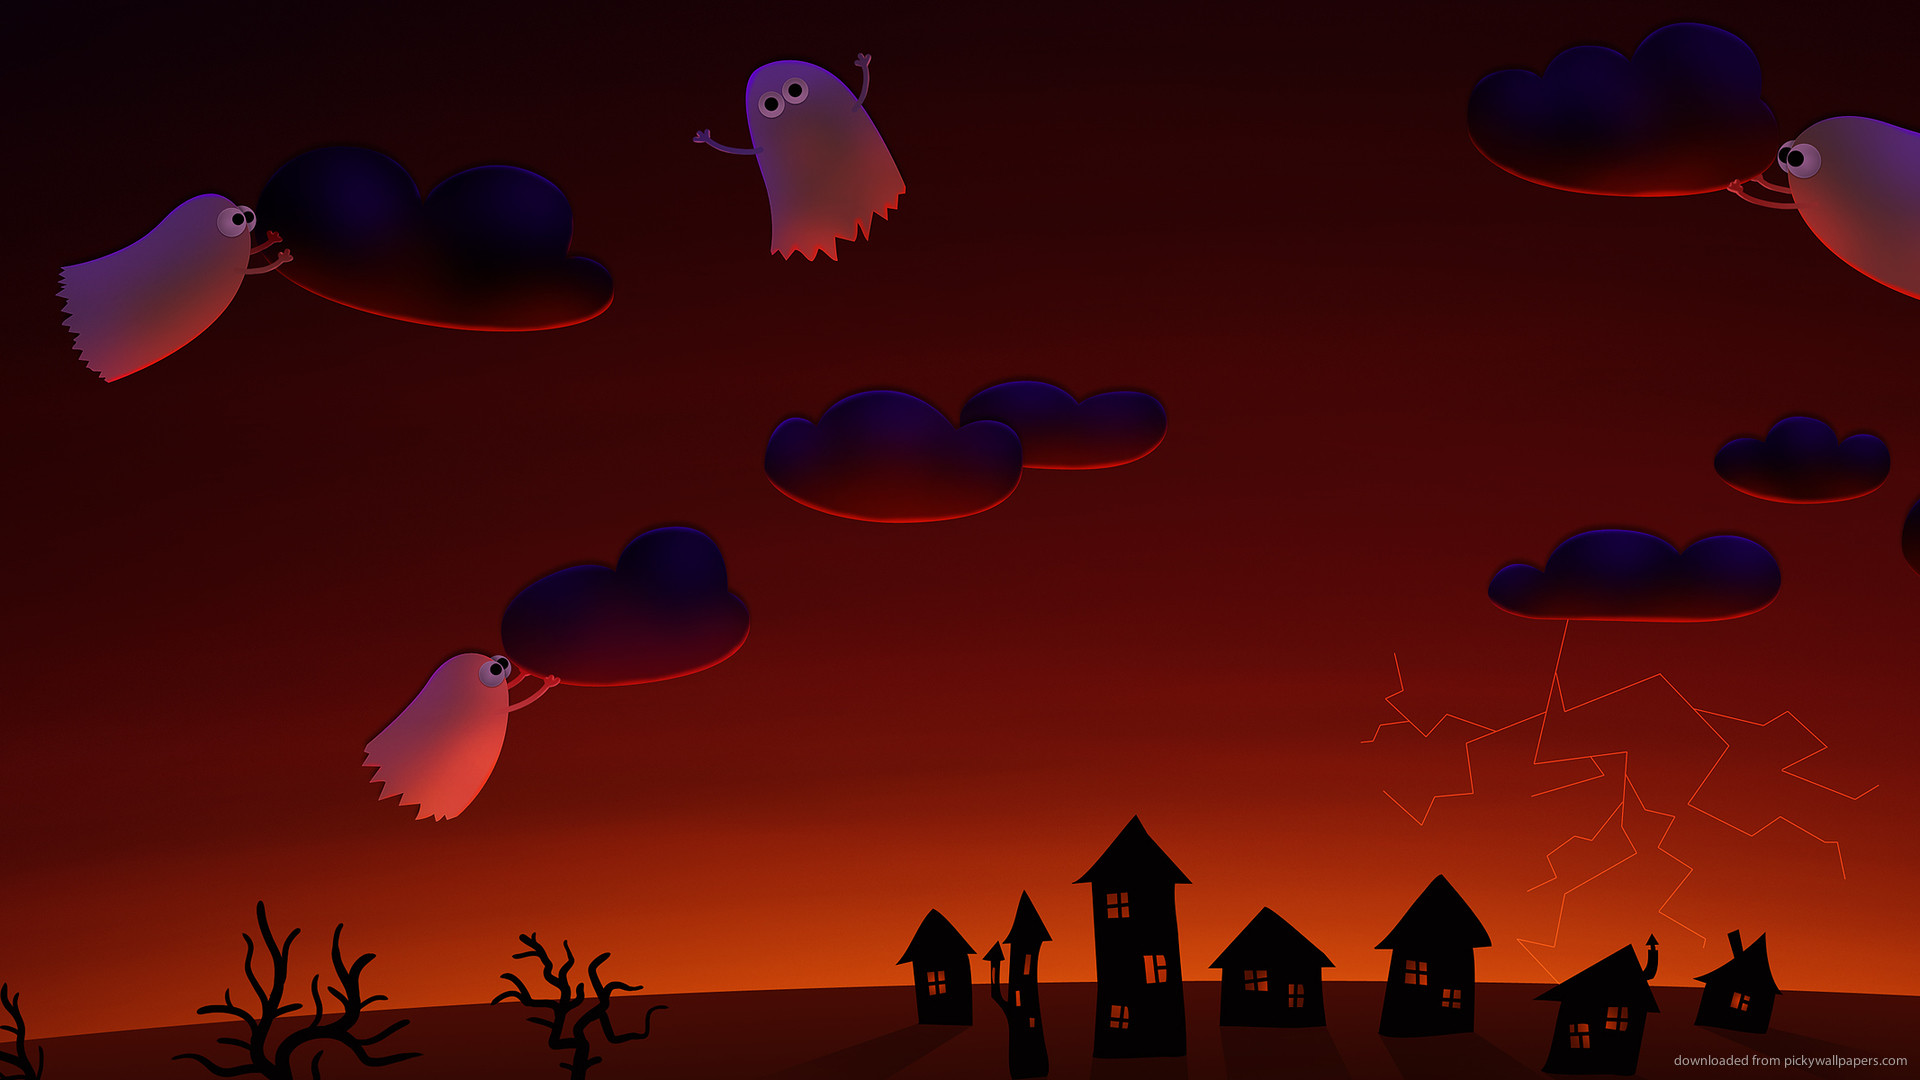 Halloween cute ghosts village for 1920×1080